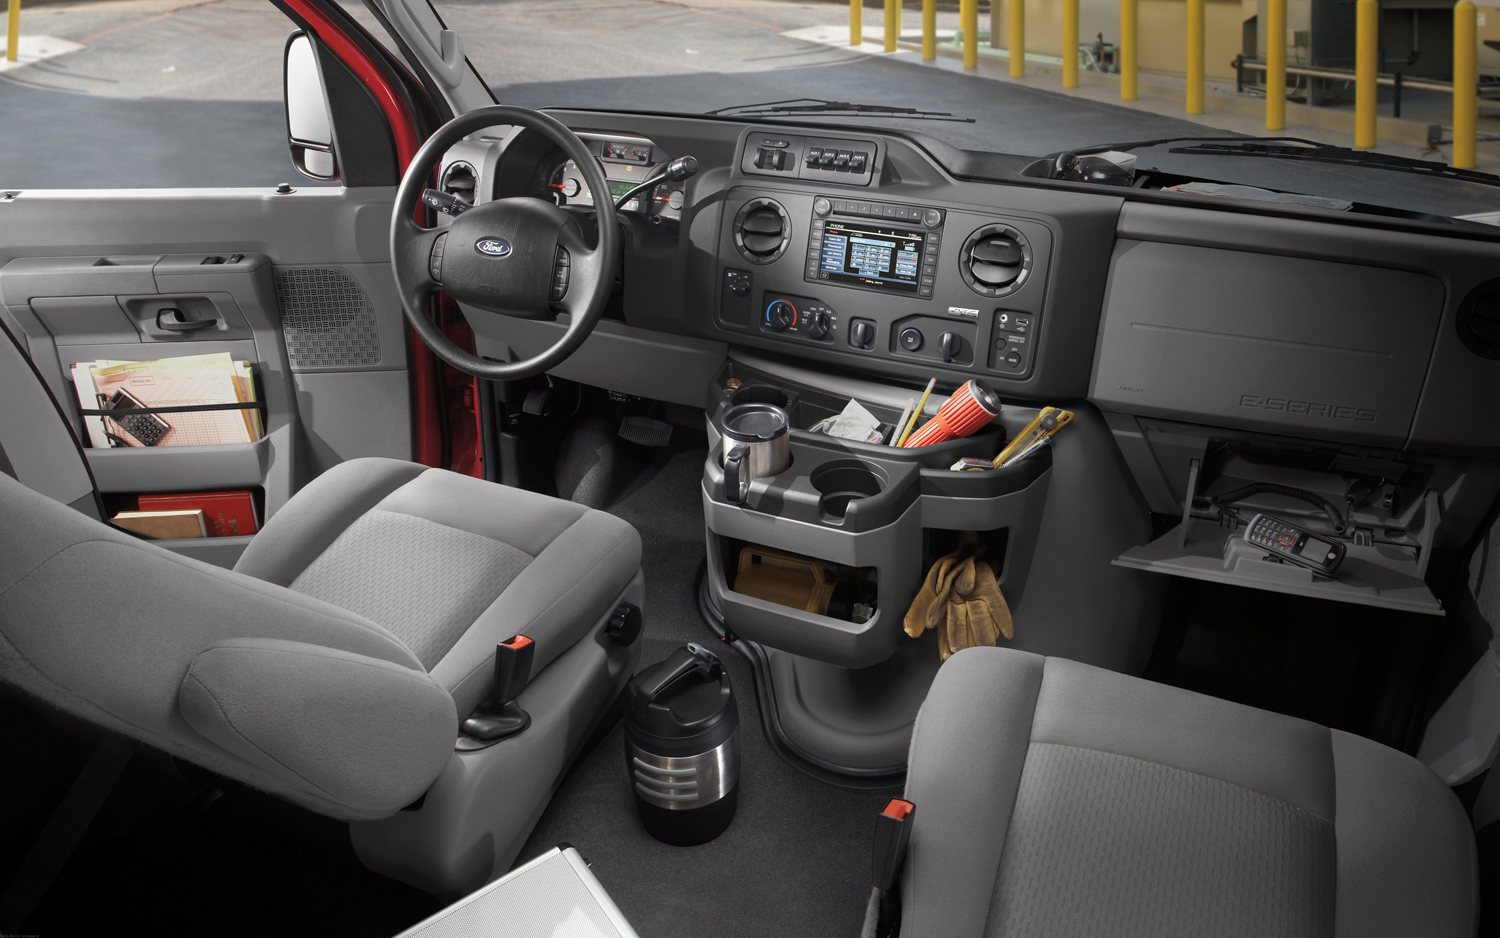 2013 Ford E-series Van #6